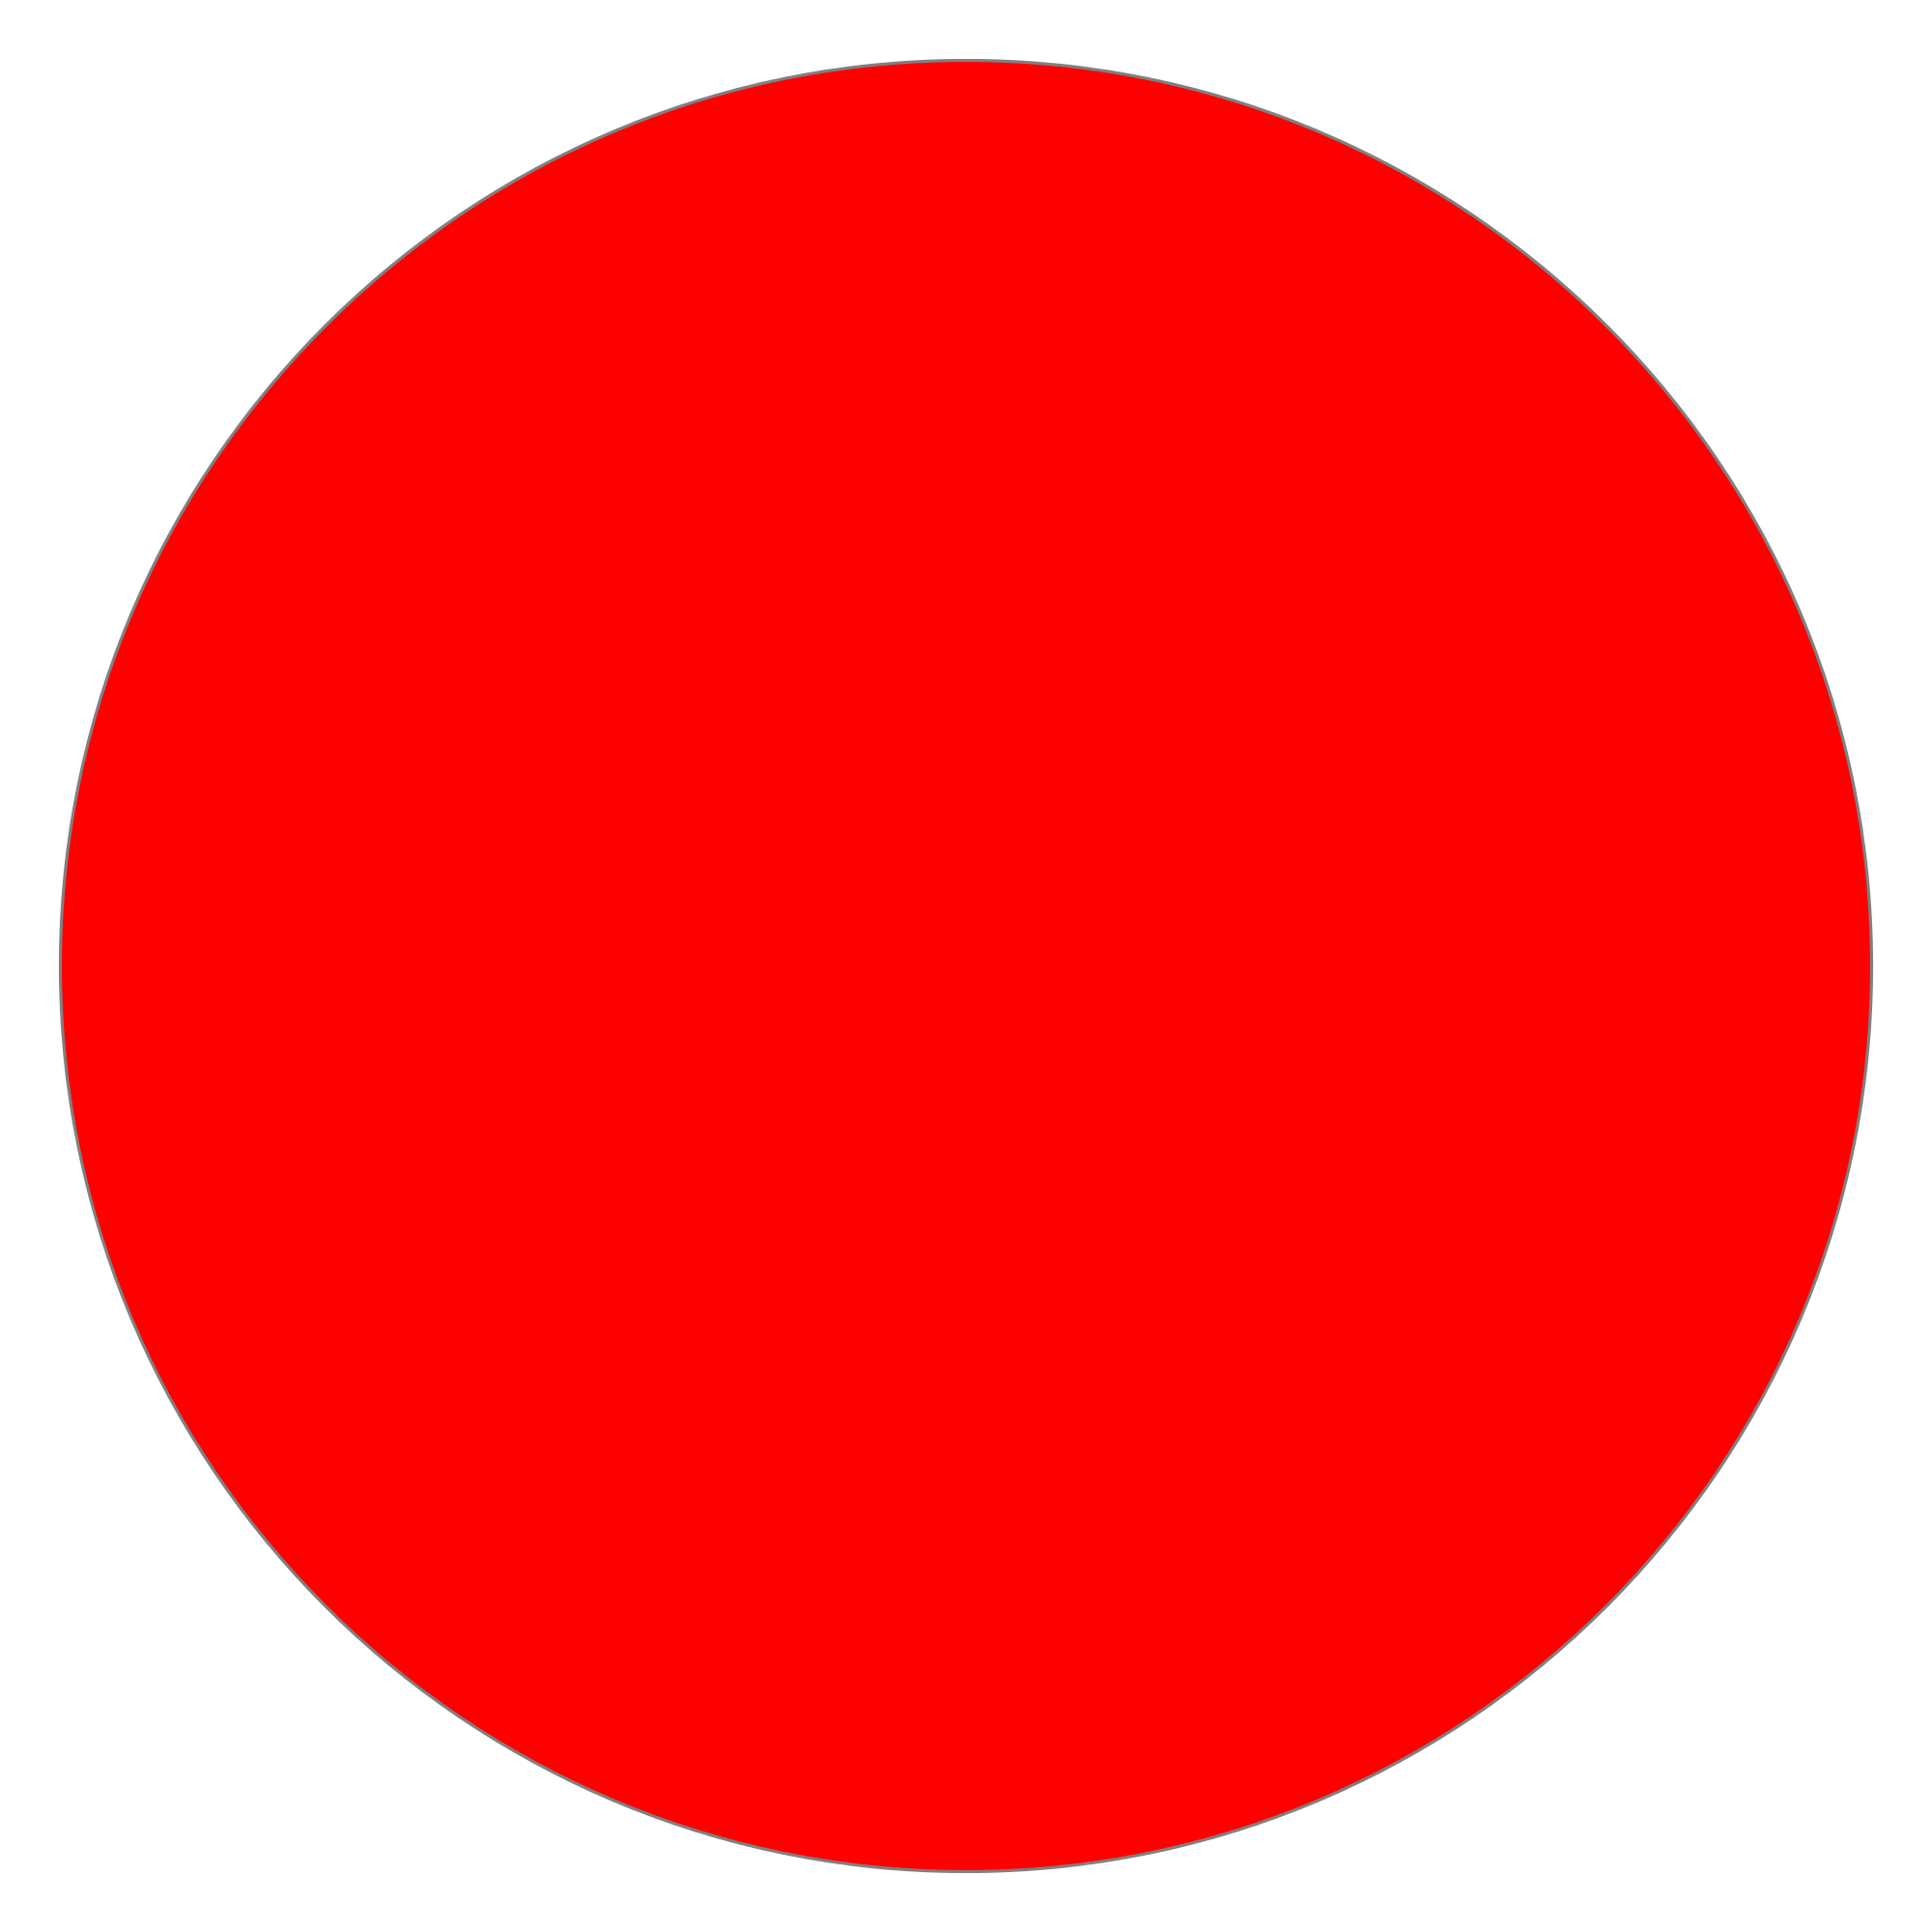 Dots clipart red circle In Red You the Picture